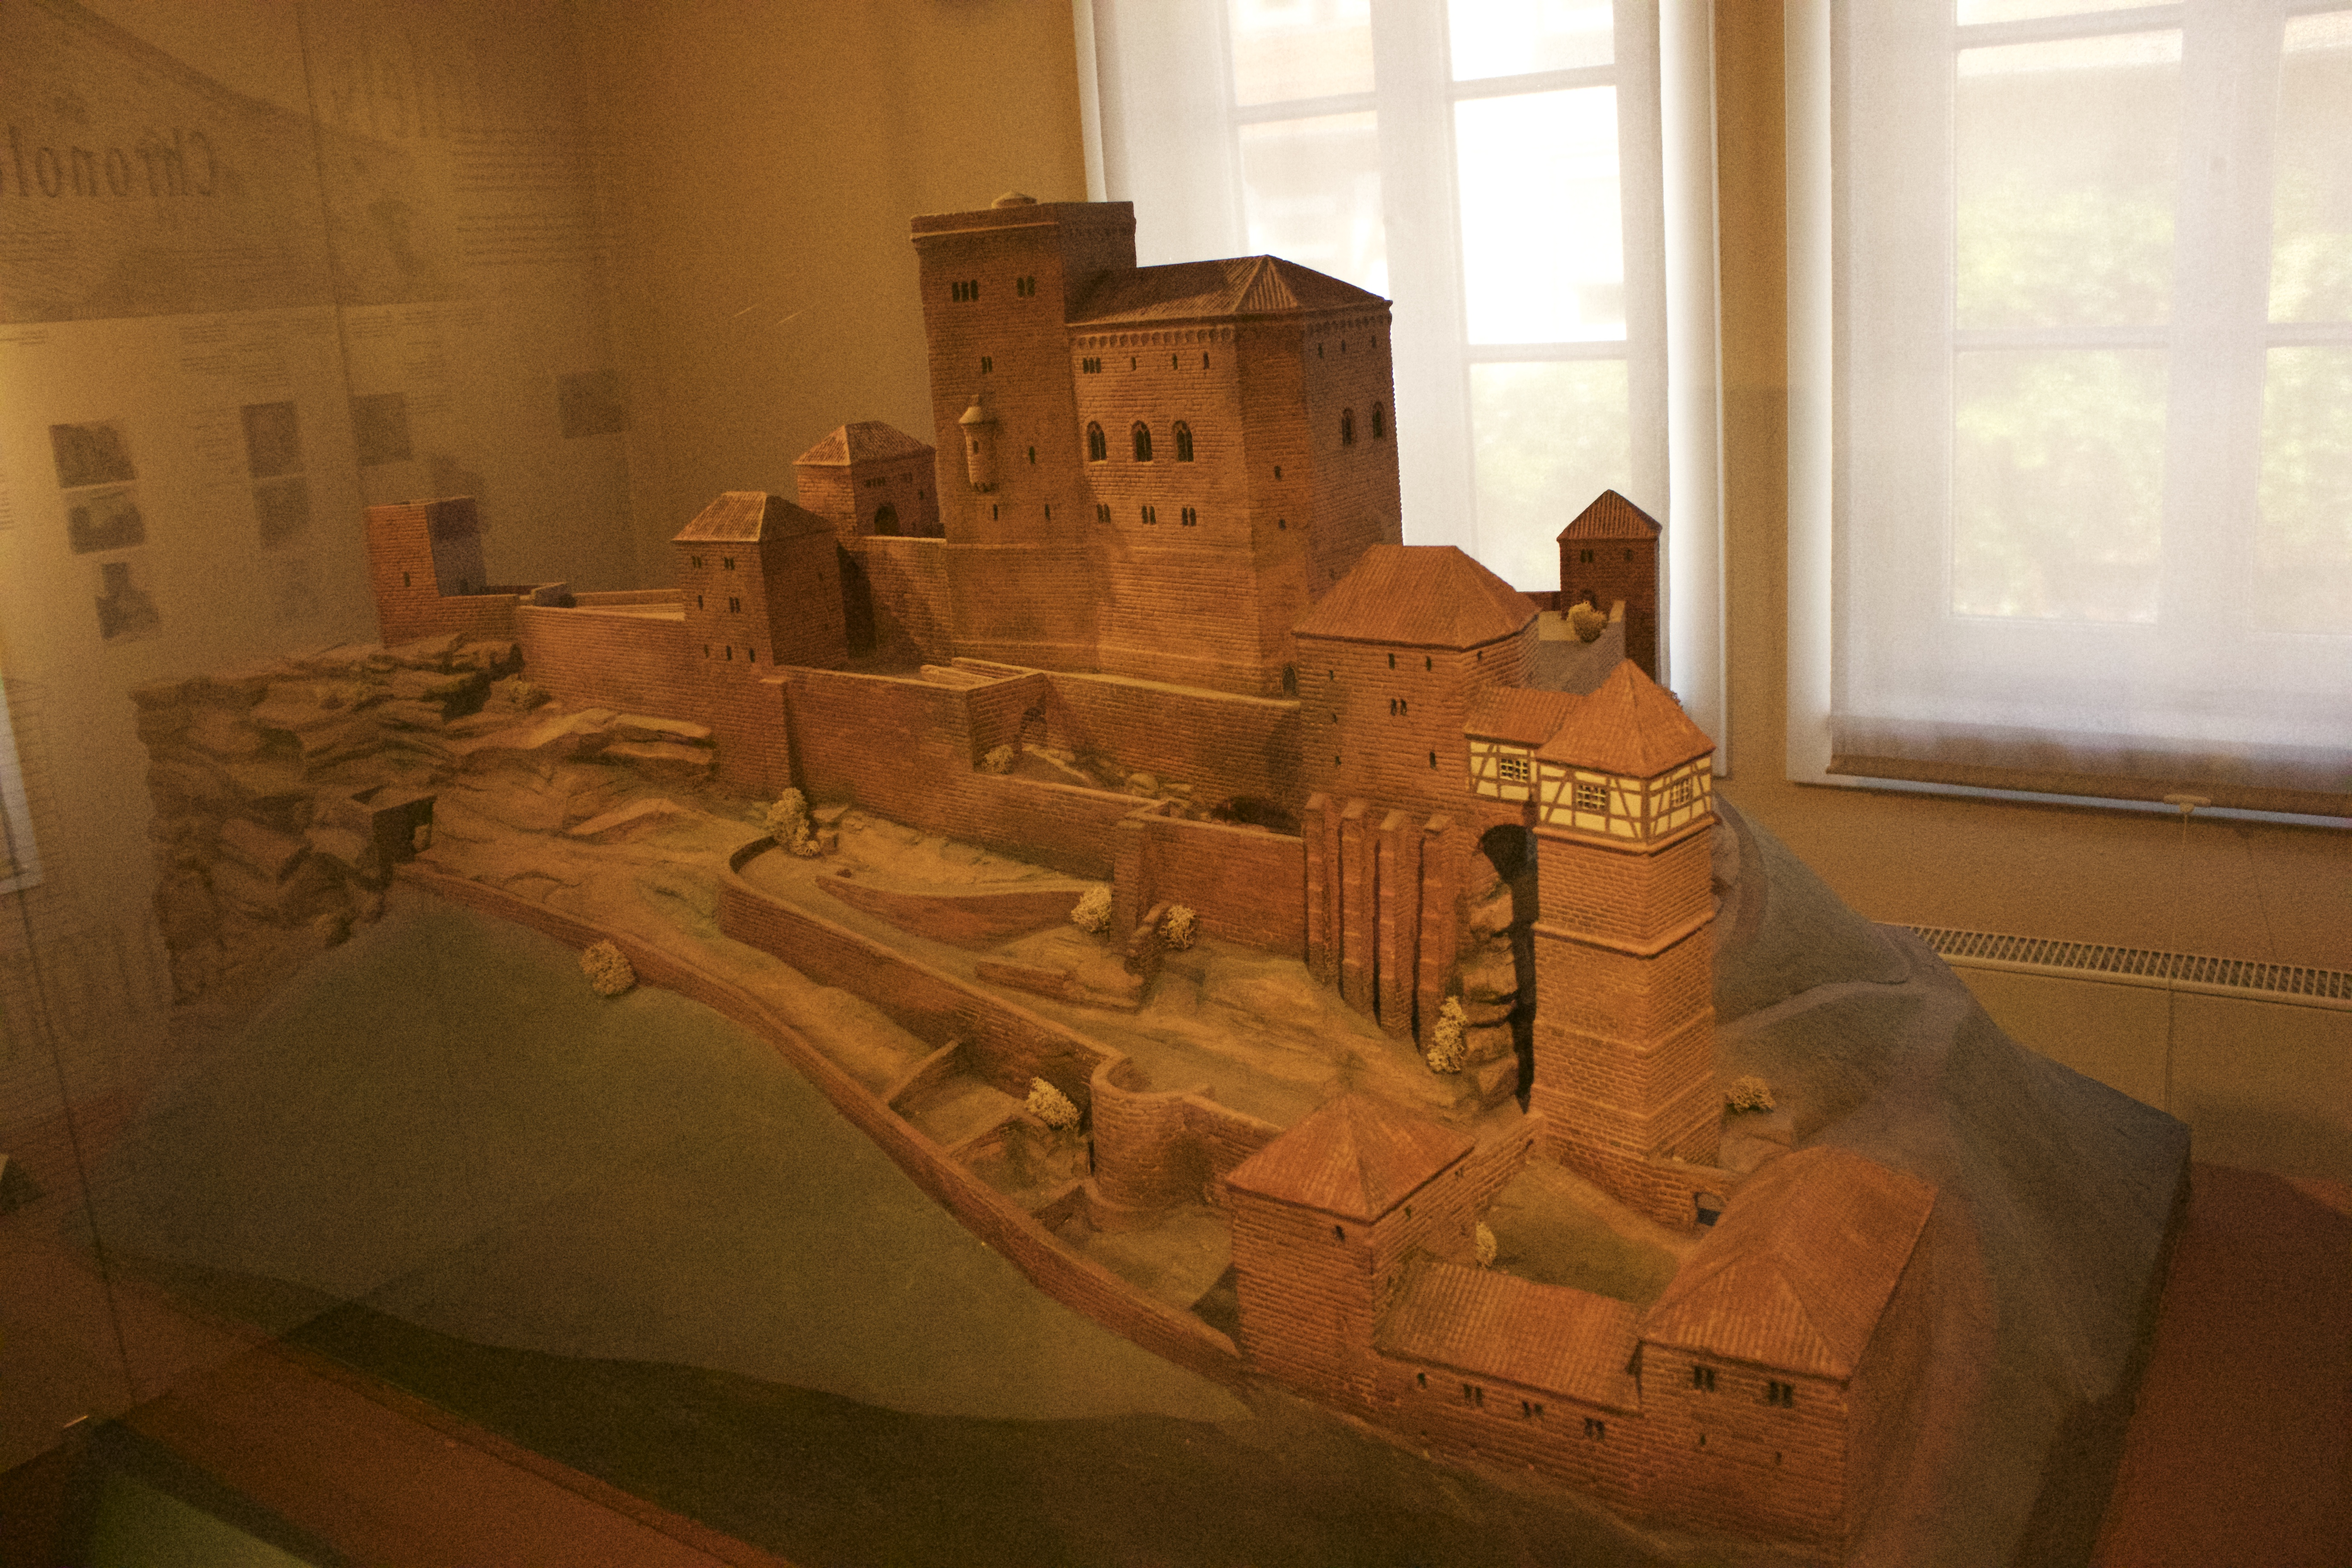 A beautiful model of the Castle Trifels.